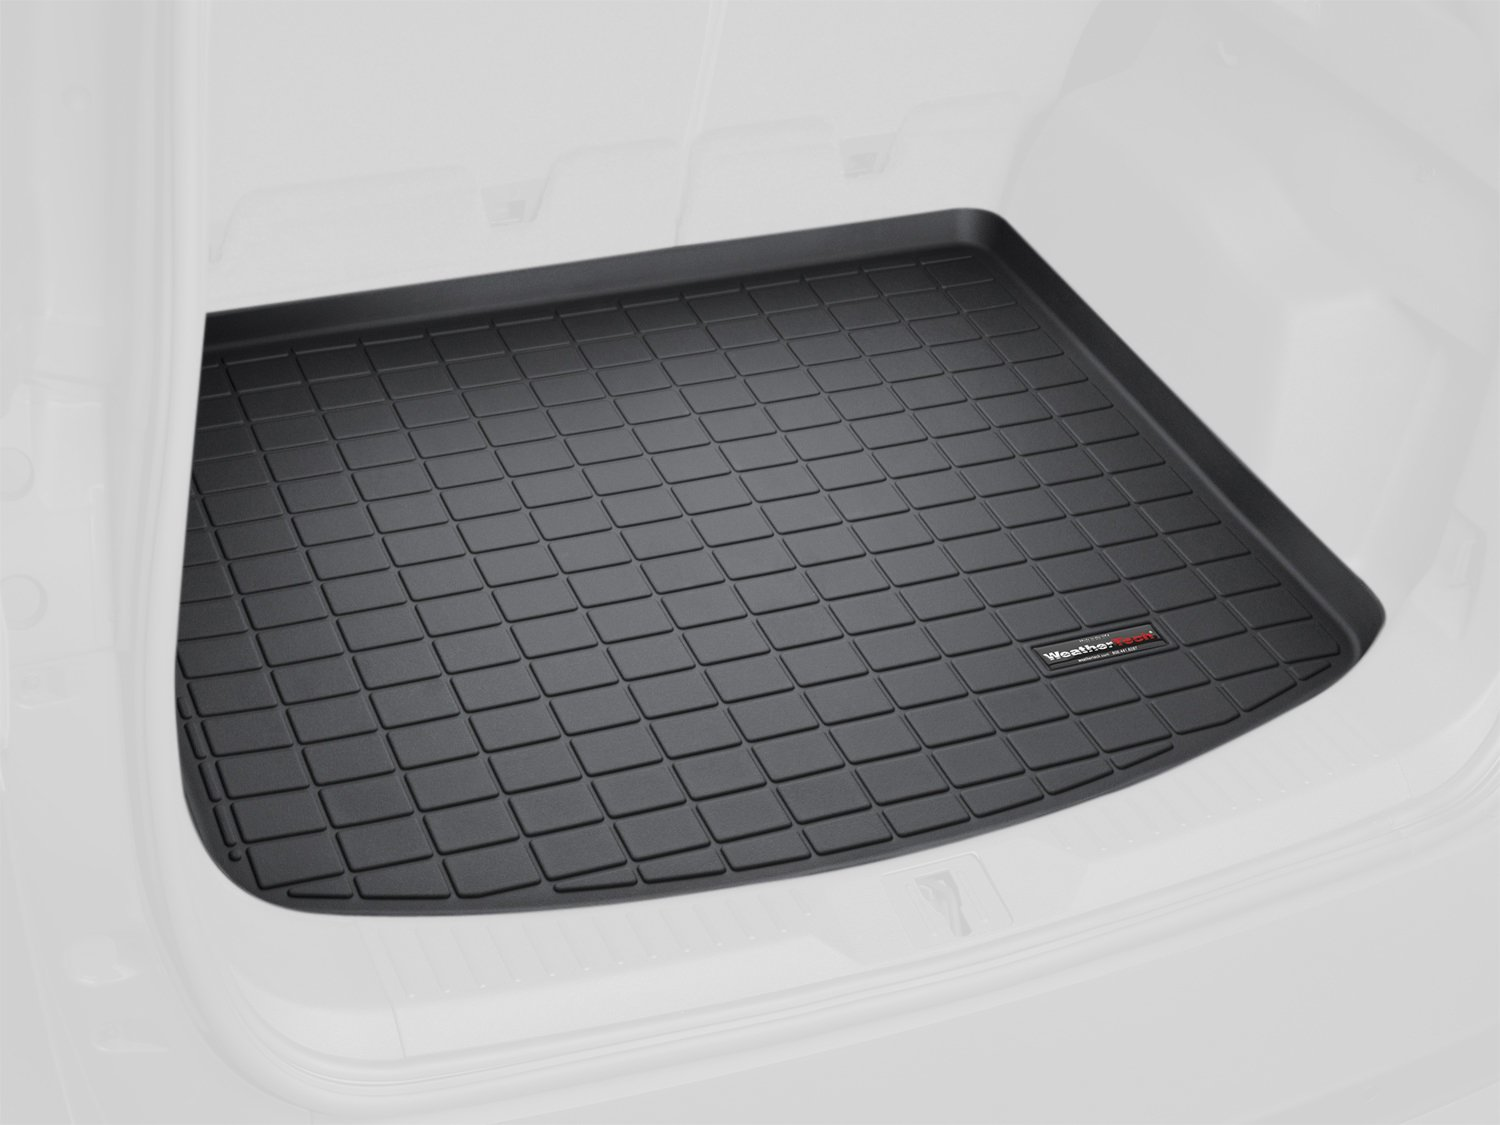 WeatherTech Custom Fit Cargo Liners for Ford Escape, Black 40197